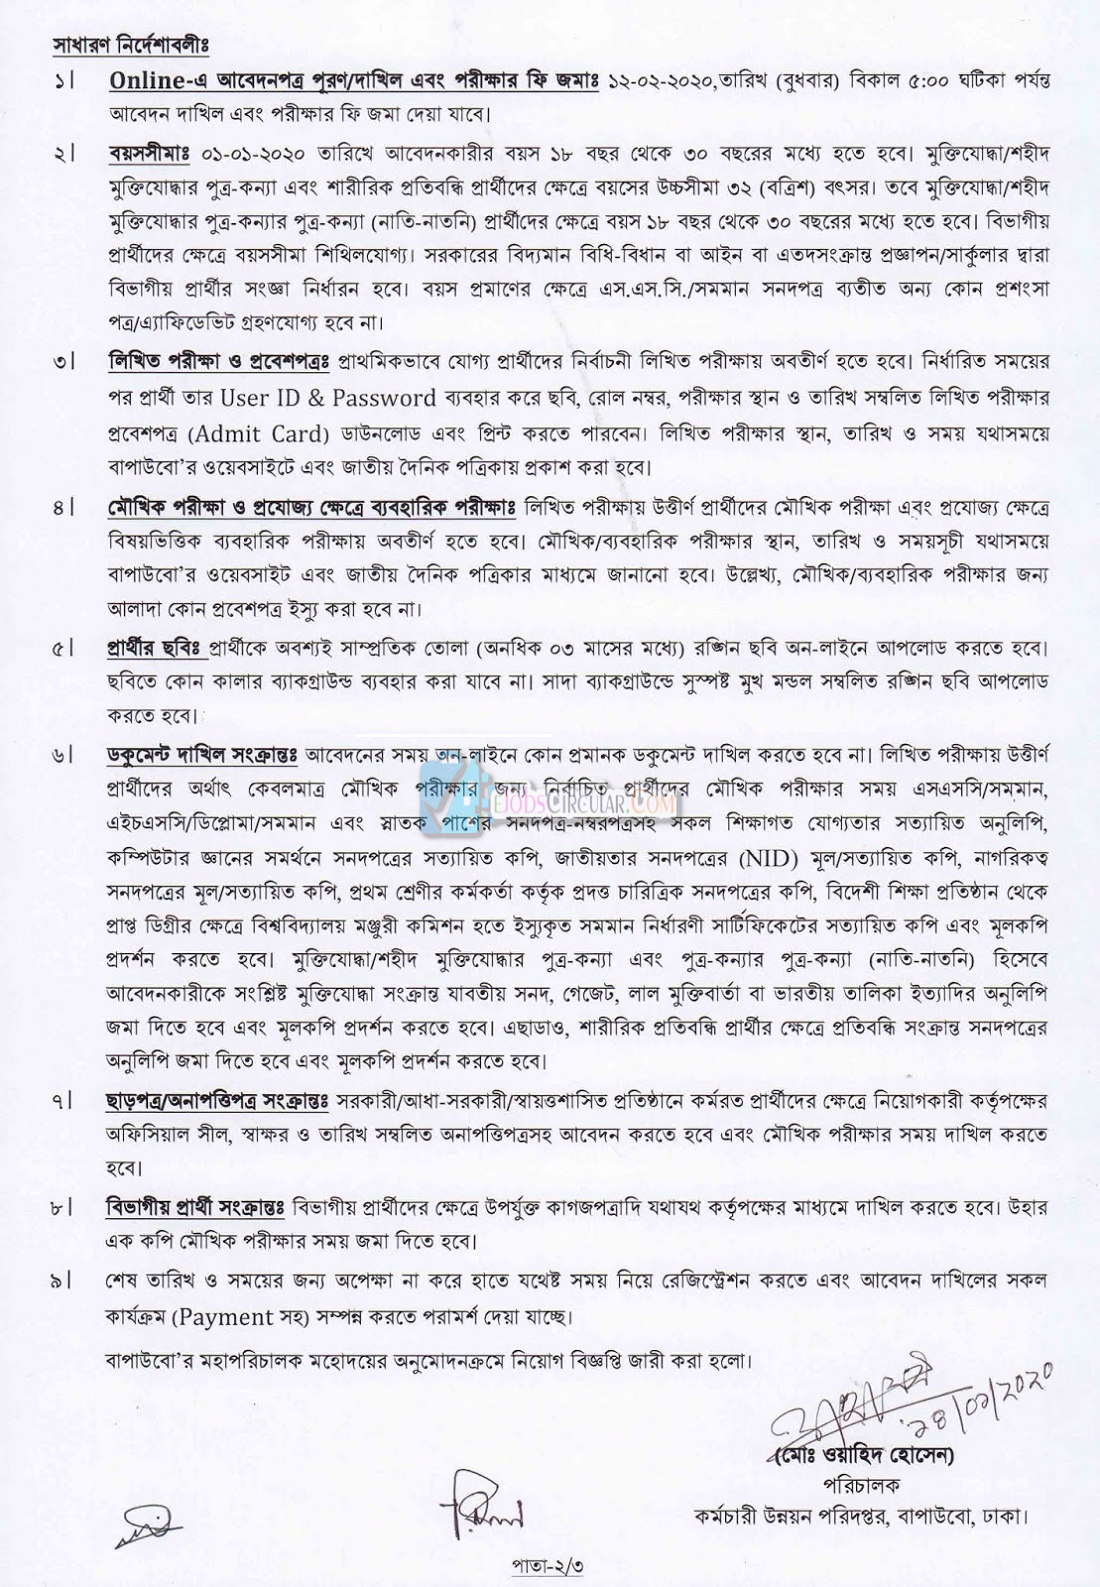 Bangladesh Water Development Board Job Circular 2020